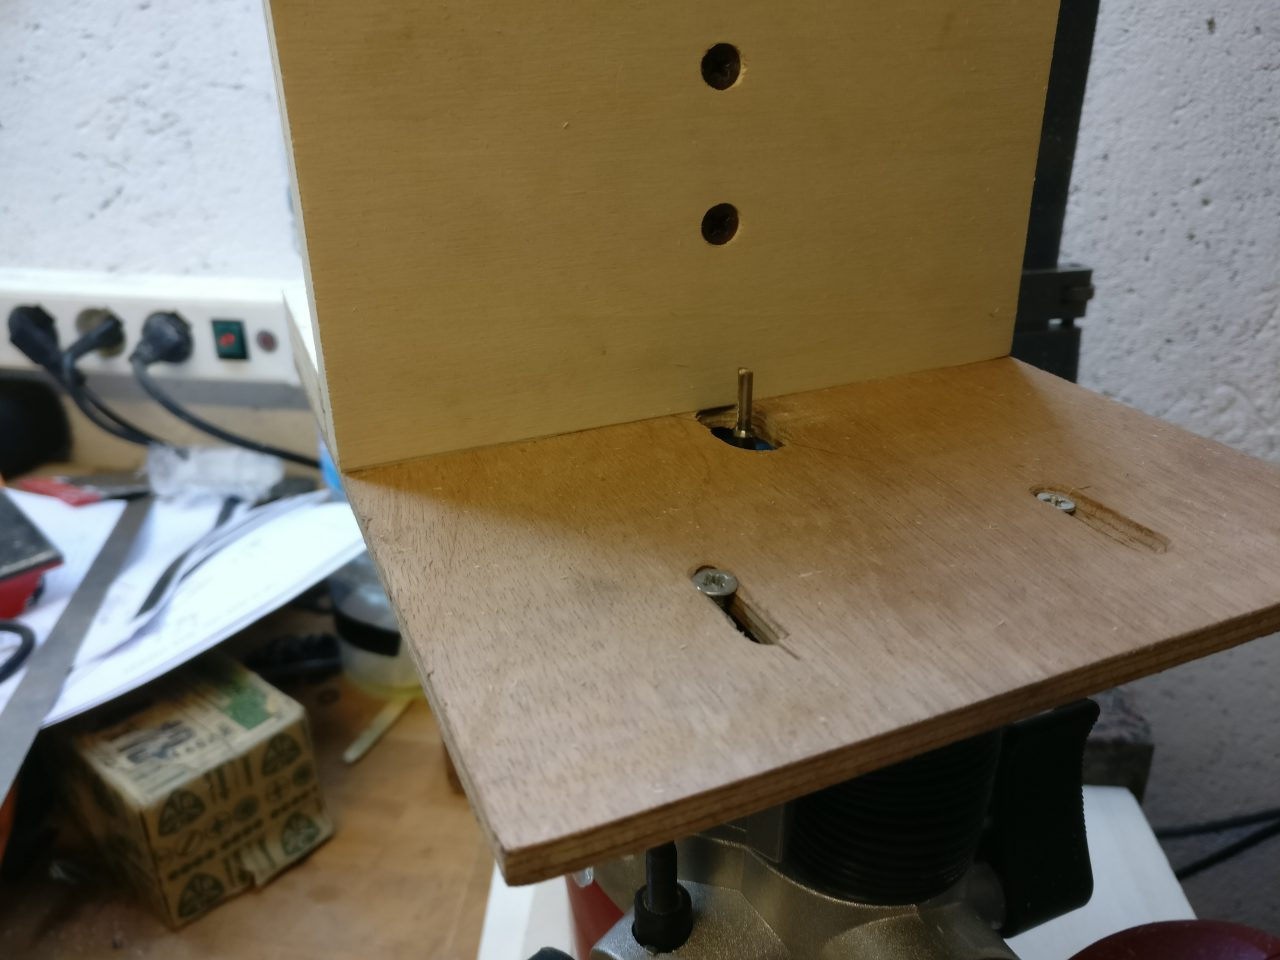 Converting a plunge router to a simple biscuit joiner